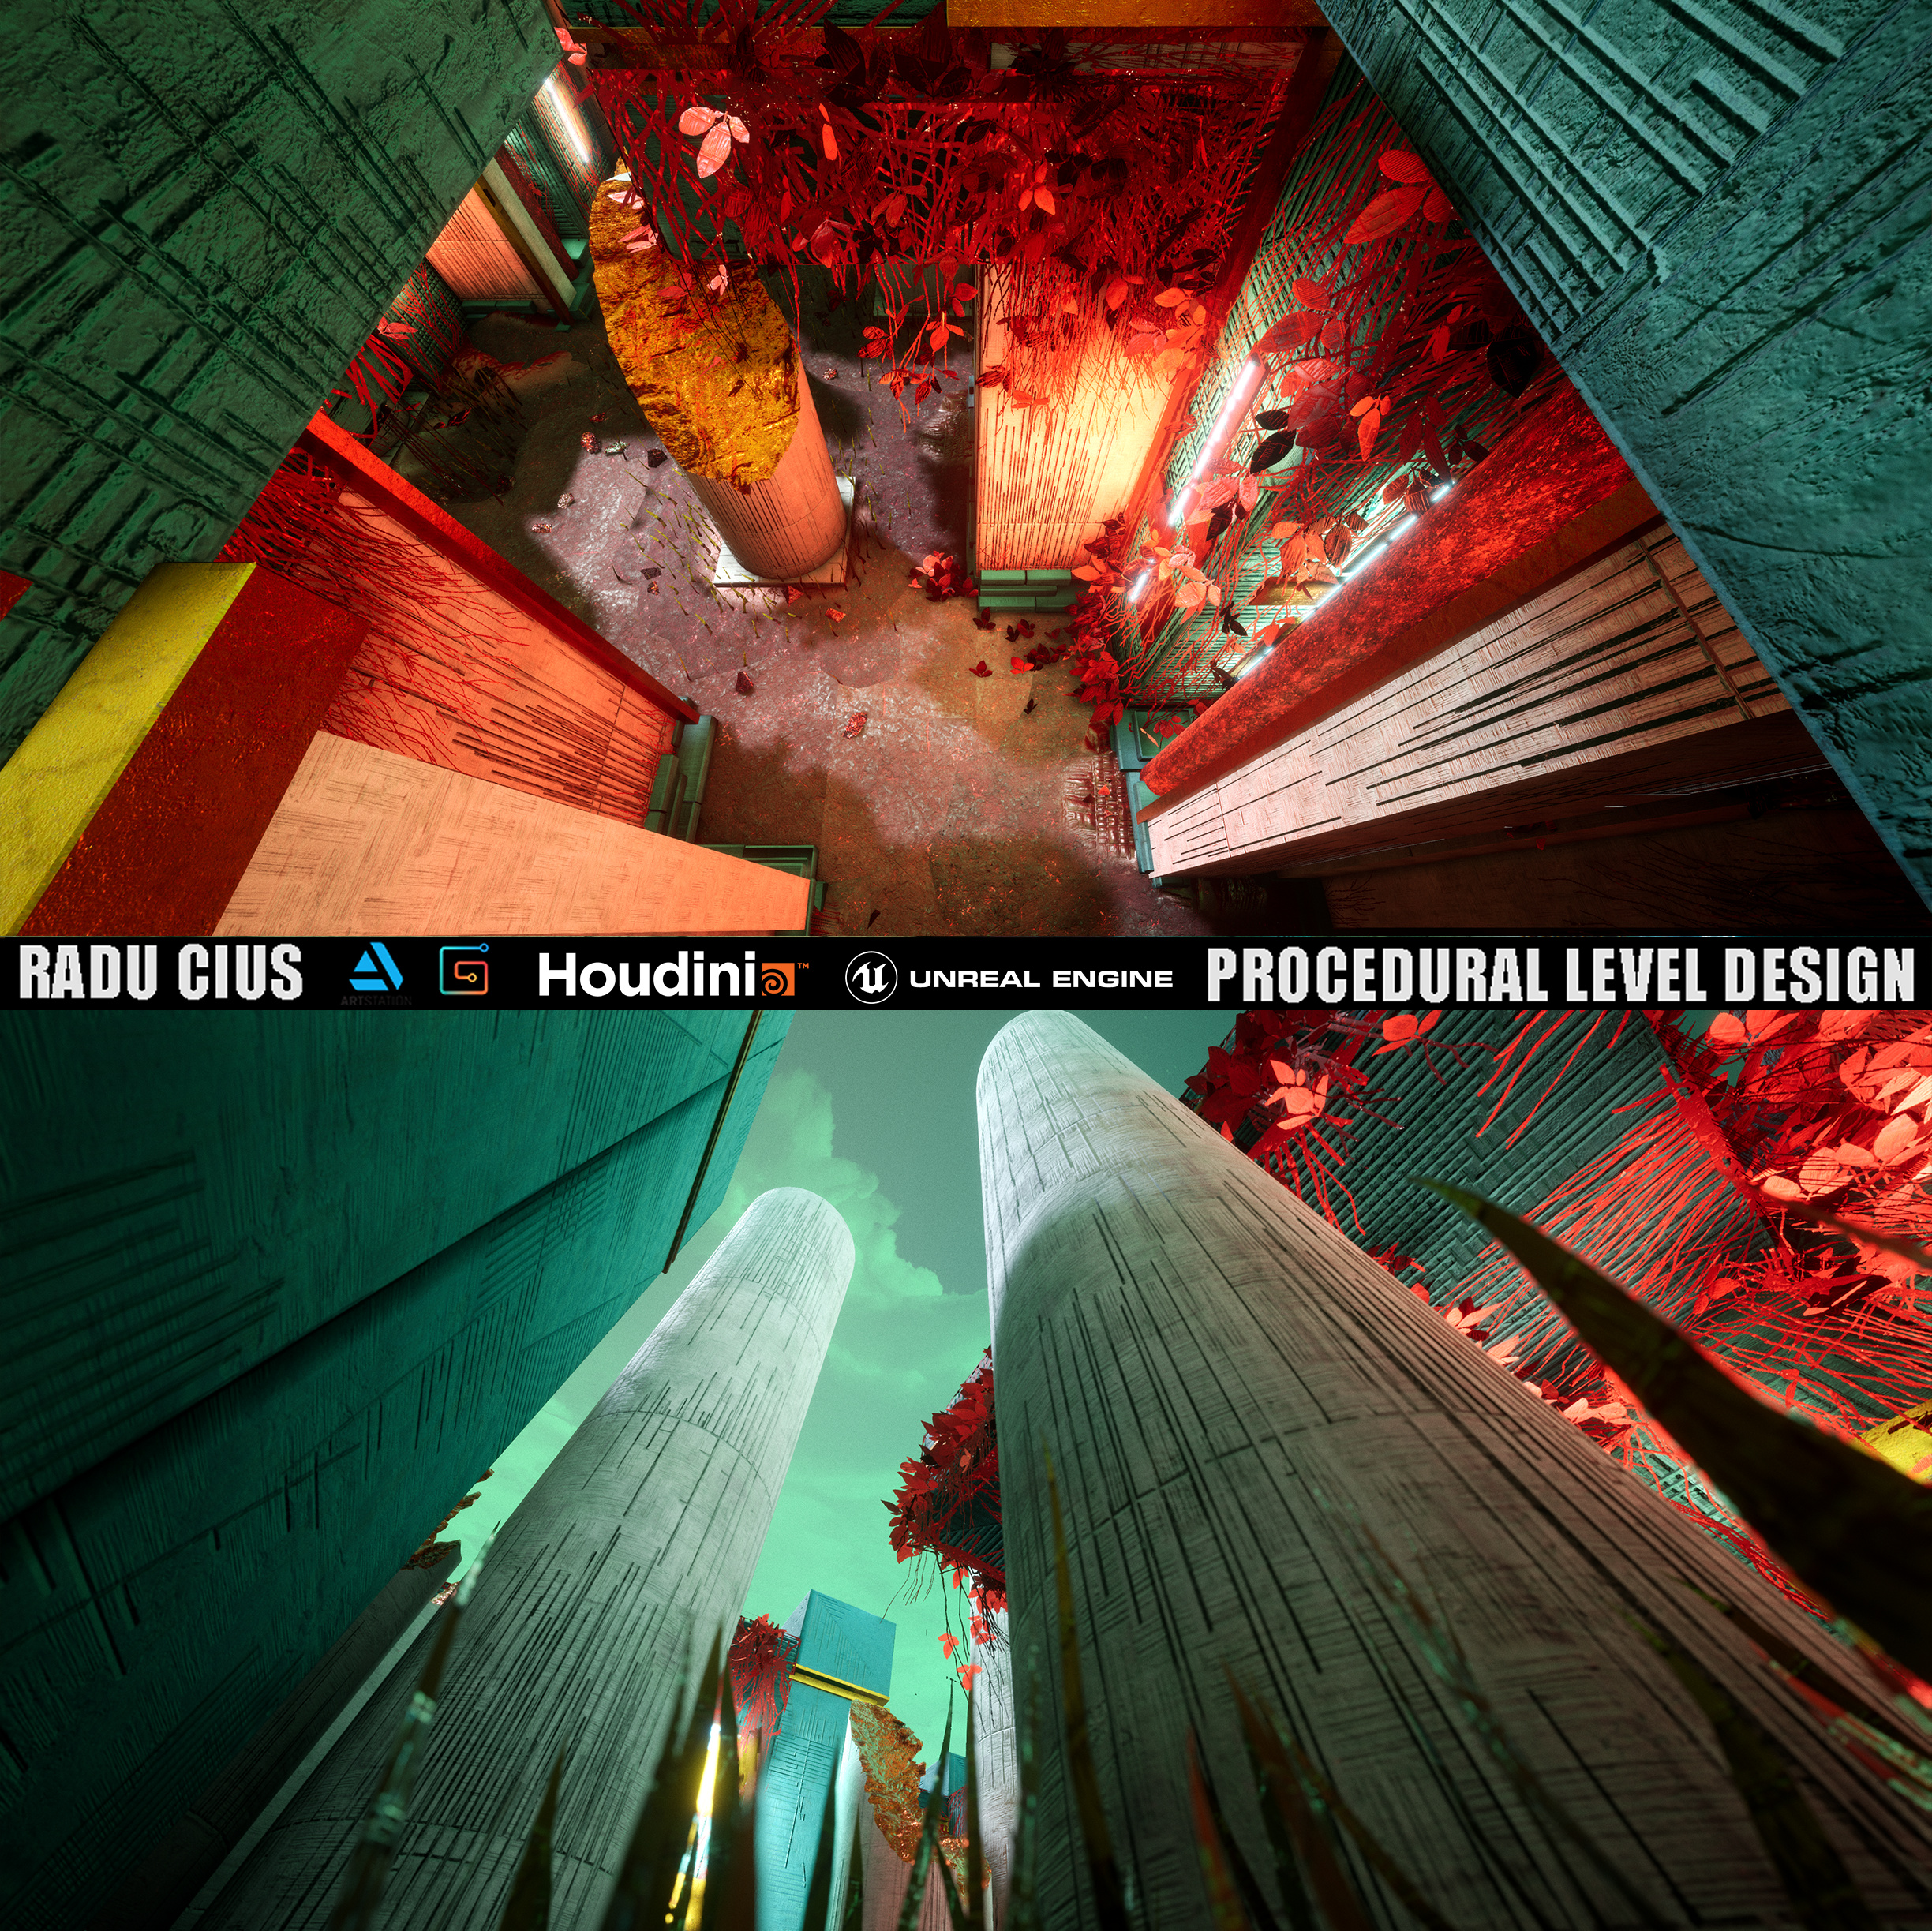 Procedural_Level_Design_2